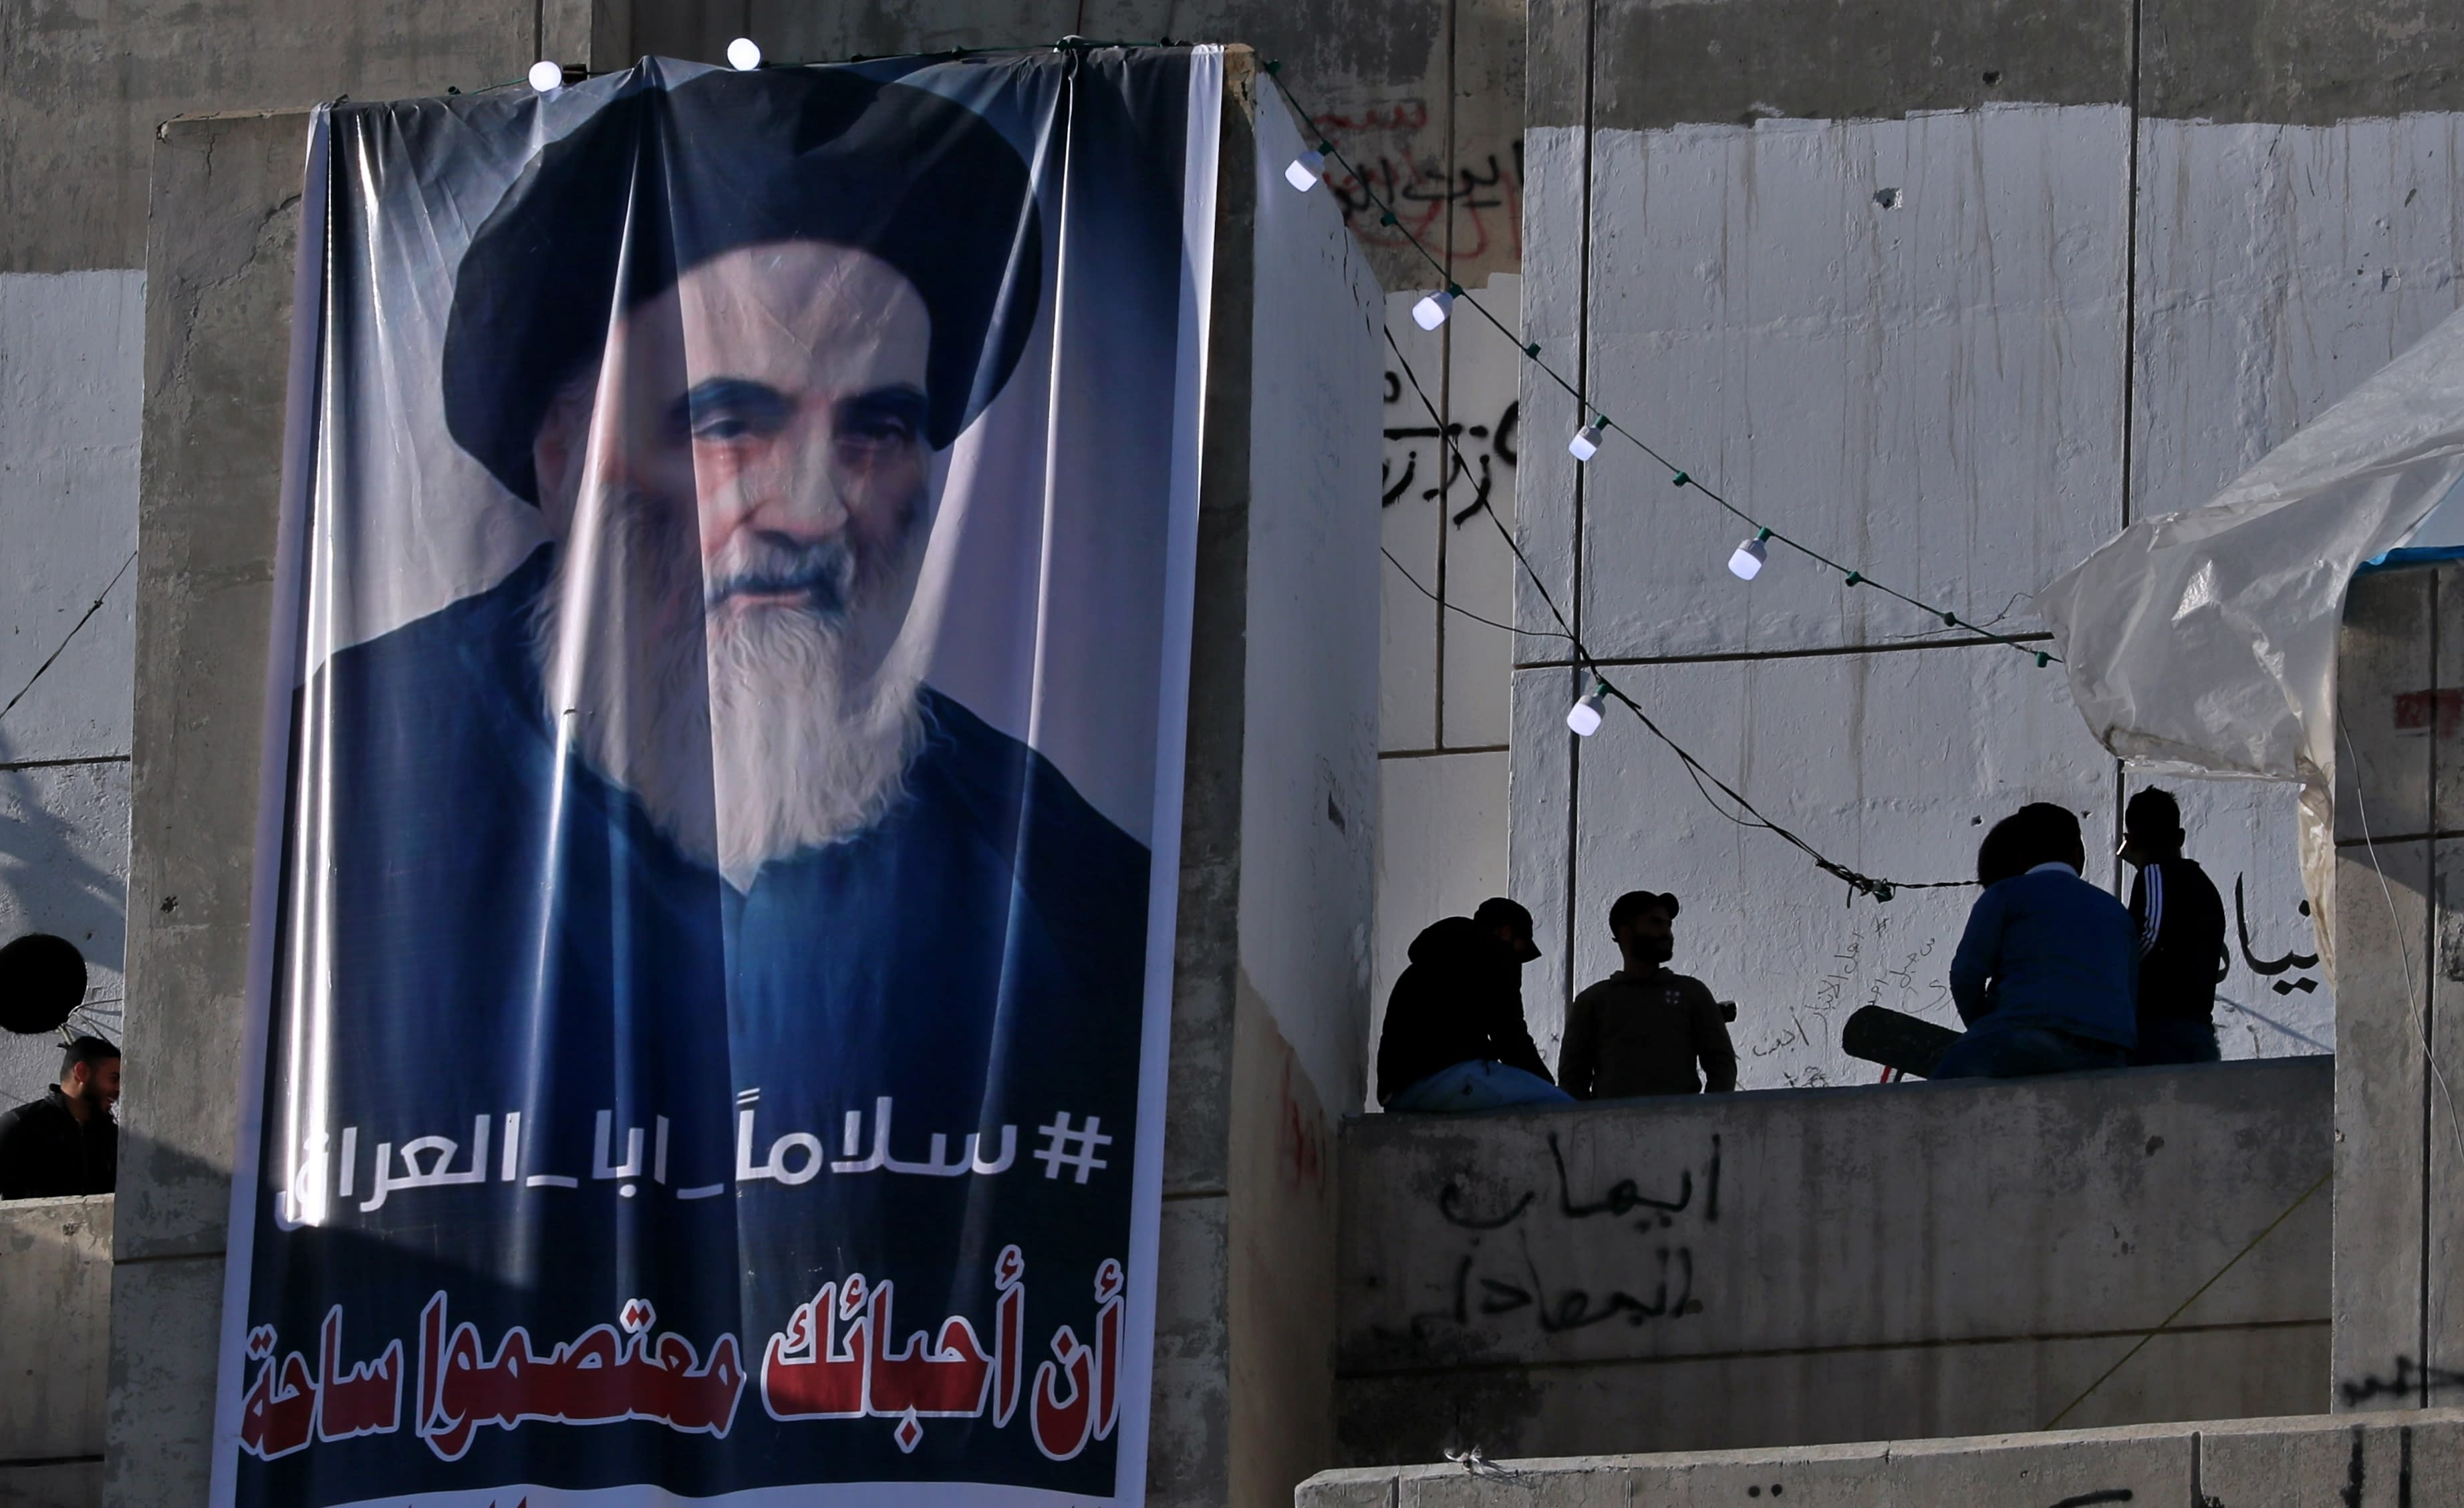 """In this Saturday, Feb. 1, 2020 photo, a poster of Grand Ayatollah Ali al-Sistani is on display with Arabic that reads, """"Peace, father of Iraq,"""" in Tahrir Square, Baghdad, Iraq. Al-Sistani, Iraq's top Shiite cleric, turns 90 this year, and when he recently had surgery it sent chills around the country and beyond. What happens when al-Sistani is gone? Iran is likely to try to exploit the void to gain followers among Iraq's Shiites. Standing in its way is the Hawza, the centuries-old institution of religious learning which al-Sistani heads and which follows its own tradition-bound rules. (AP Photo/Khalid Mohammed)"""